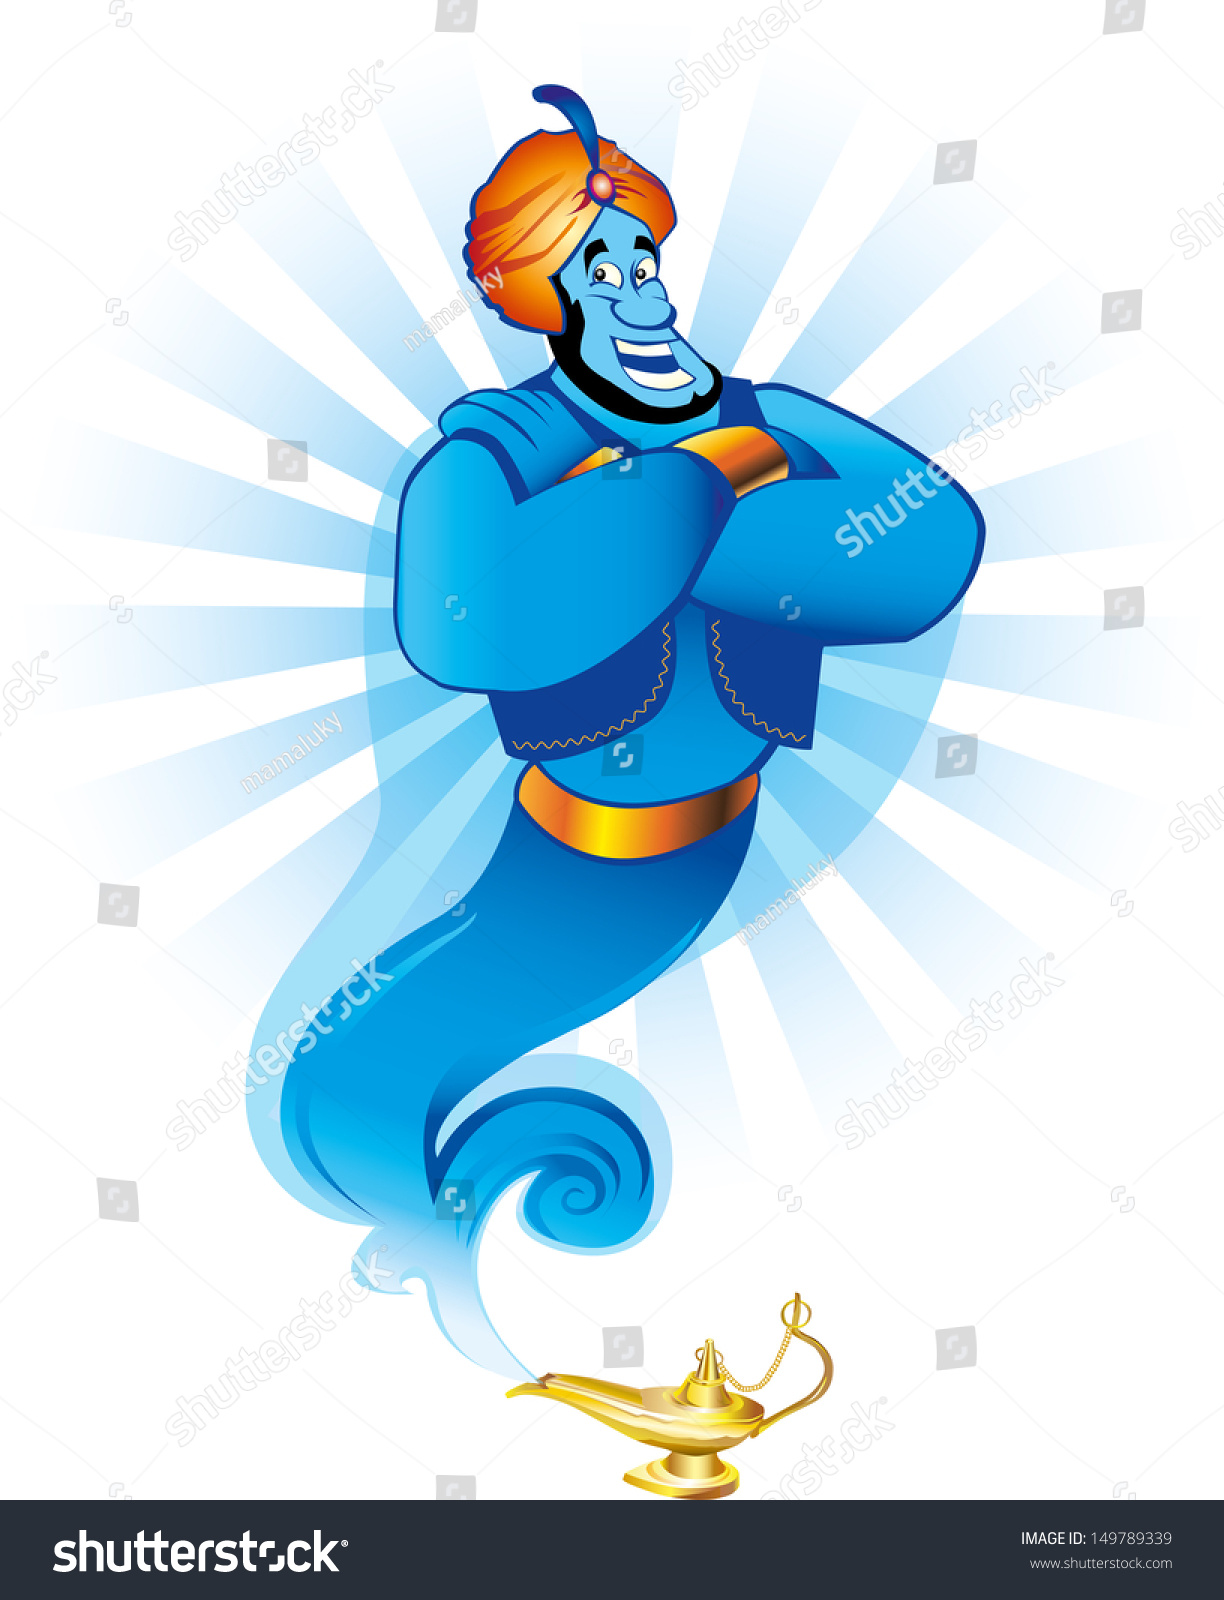 Genie Grants 3 Wishes